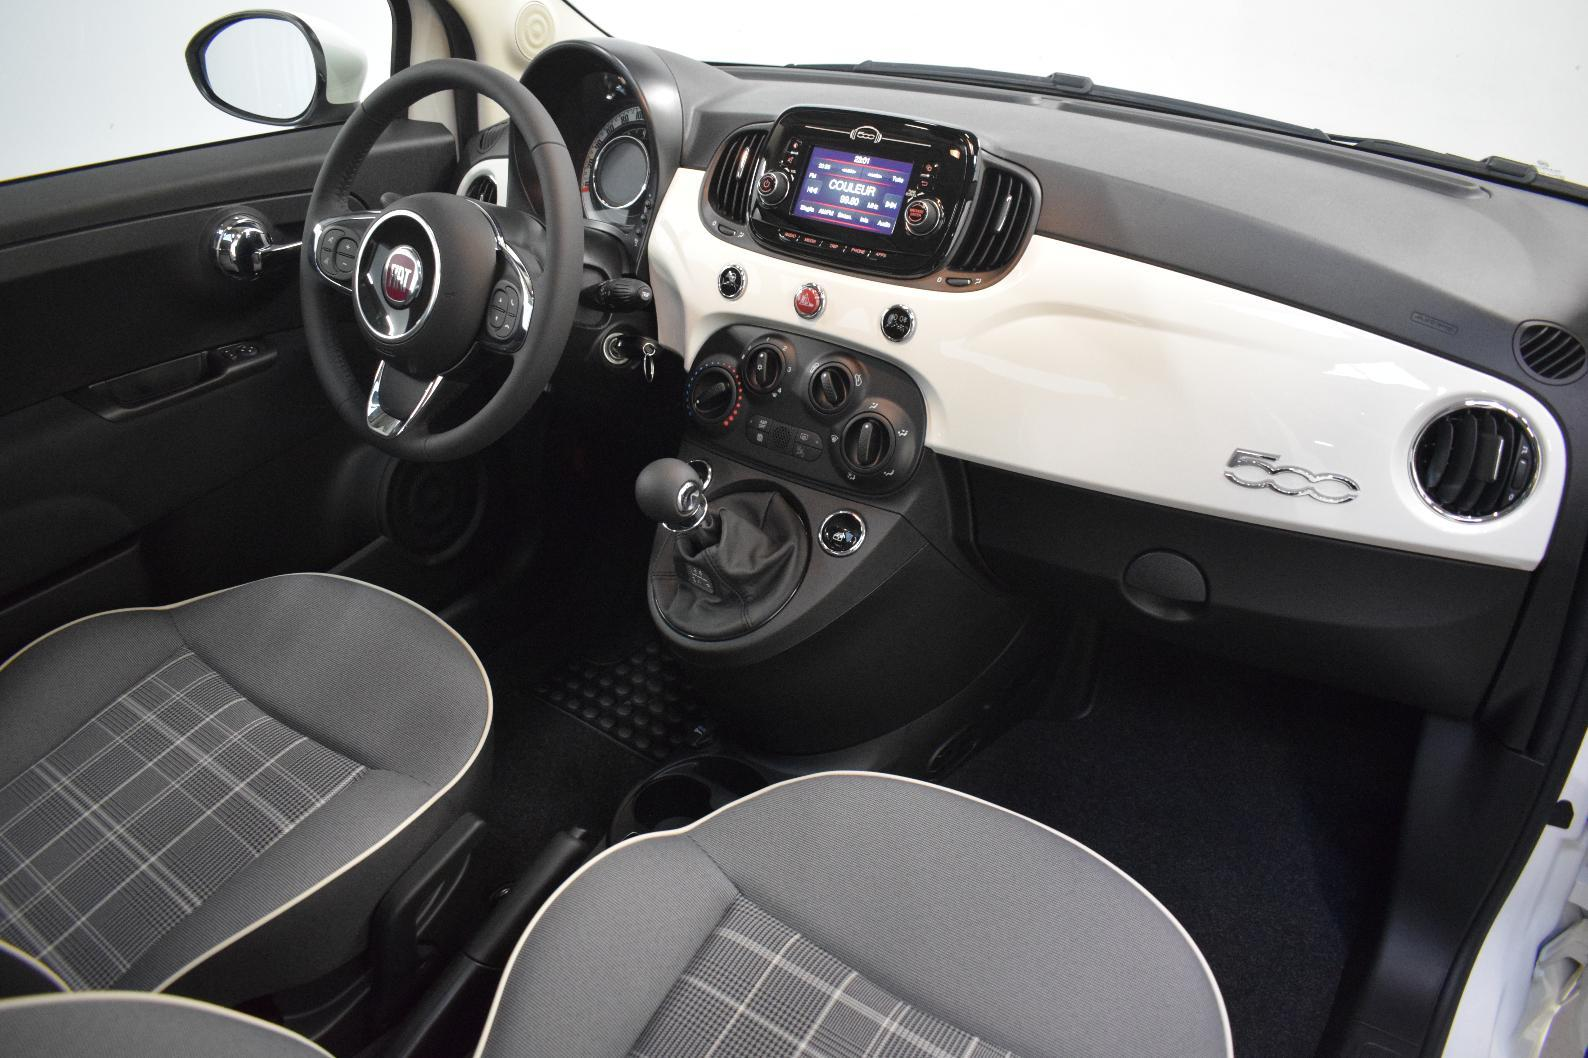 FIAT 500 SERIE 6 EURO 6D 500 1.2 69 ch Eco Pack Lounge